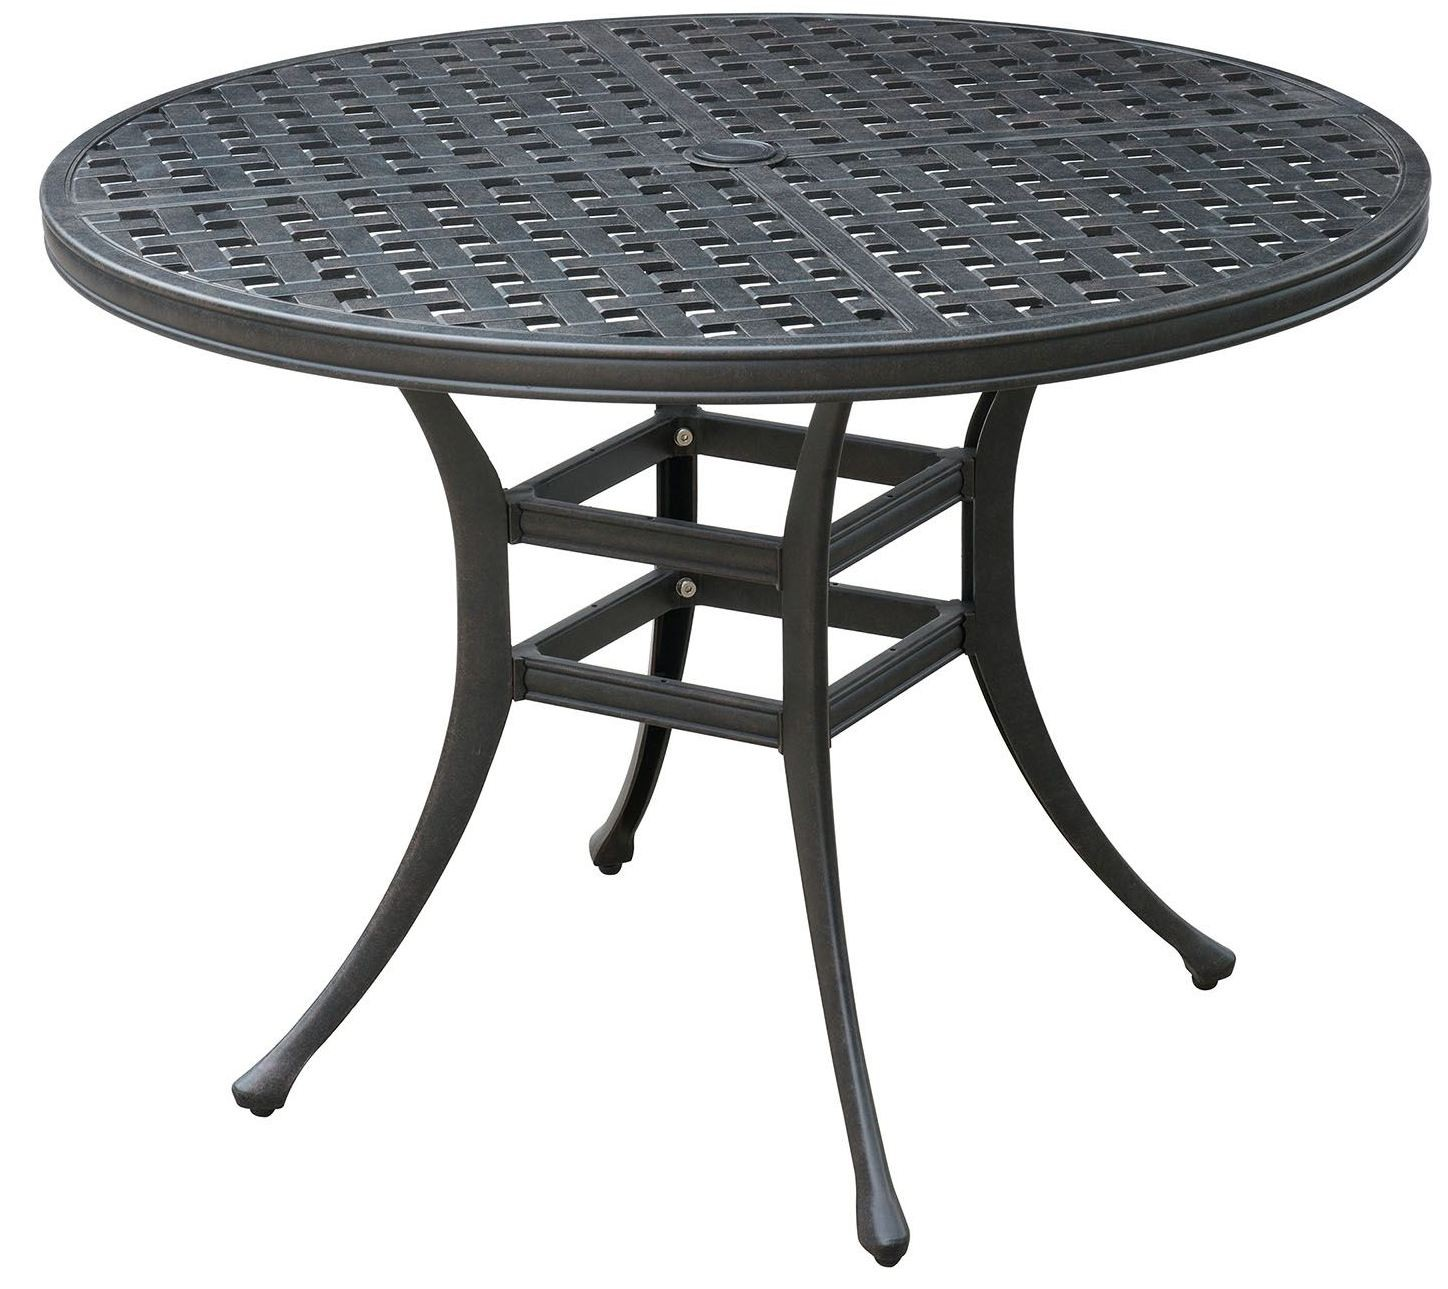 Chiara Ii Dark Gray Round Patio Dining Table Cm Ot2303 Rt